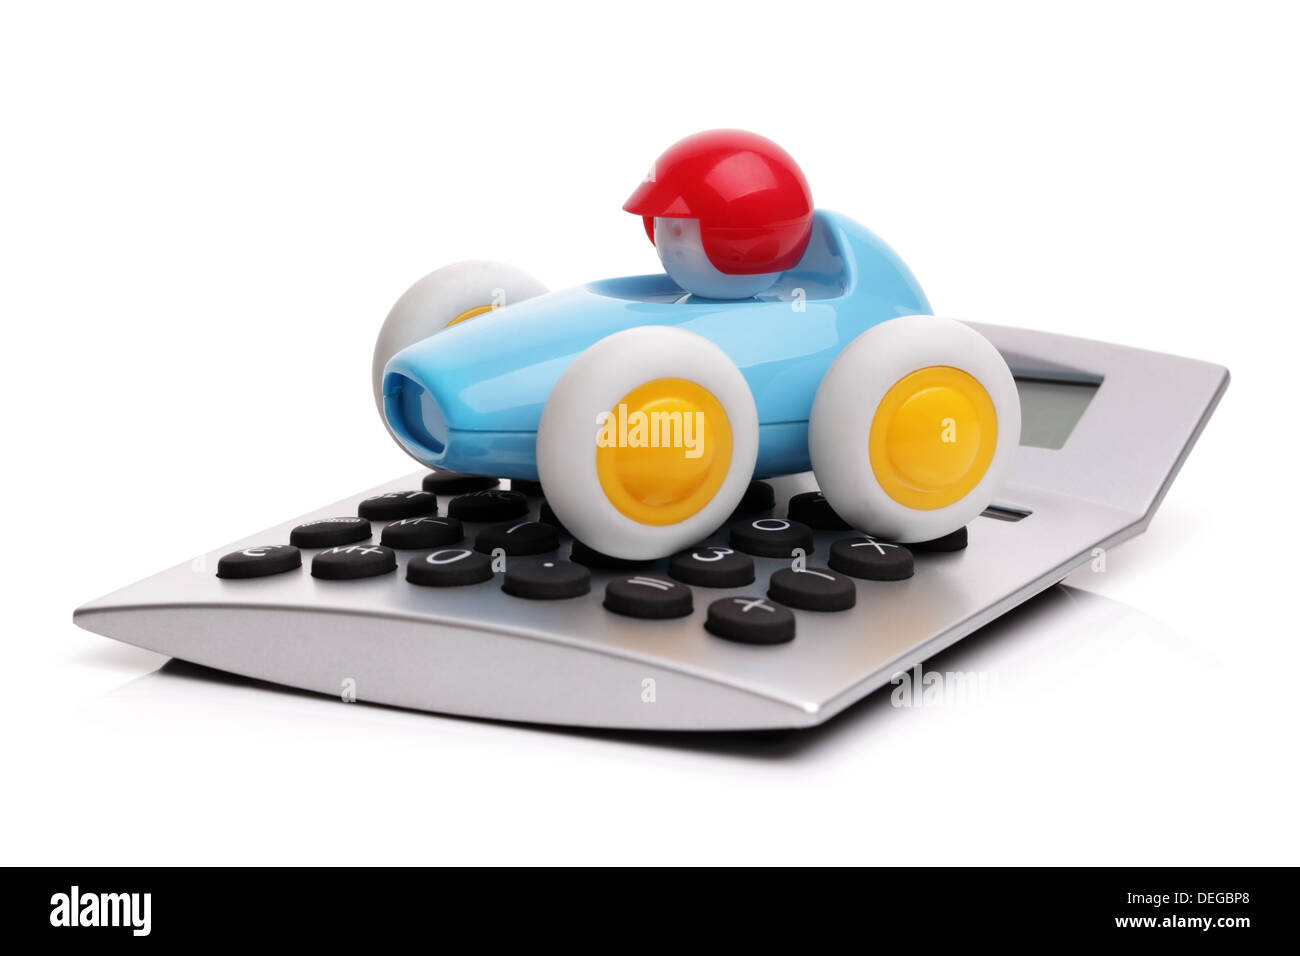 Calculator and toy car - Stock Image